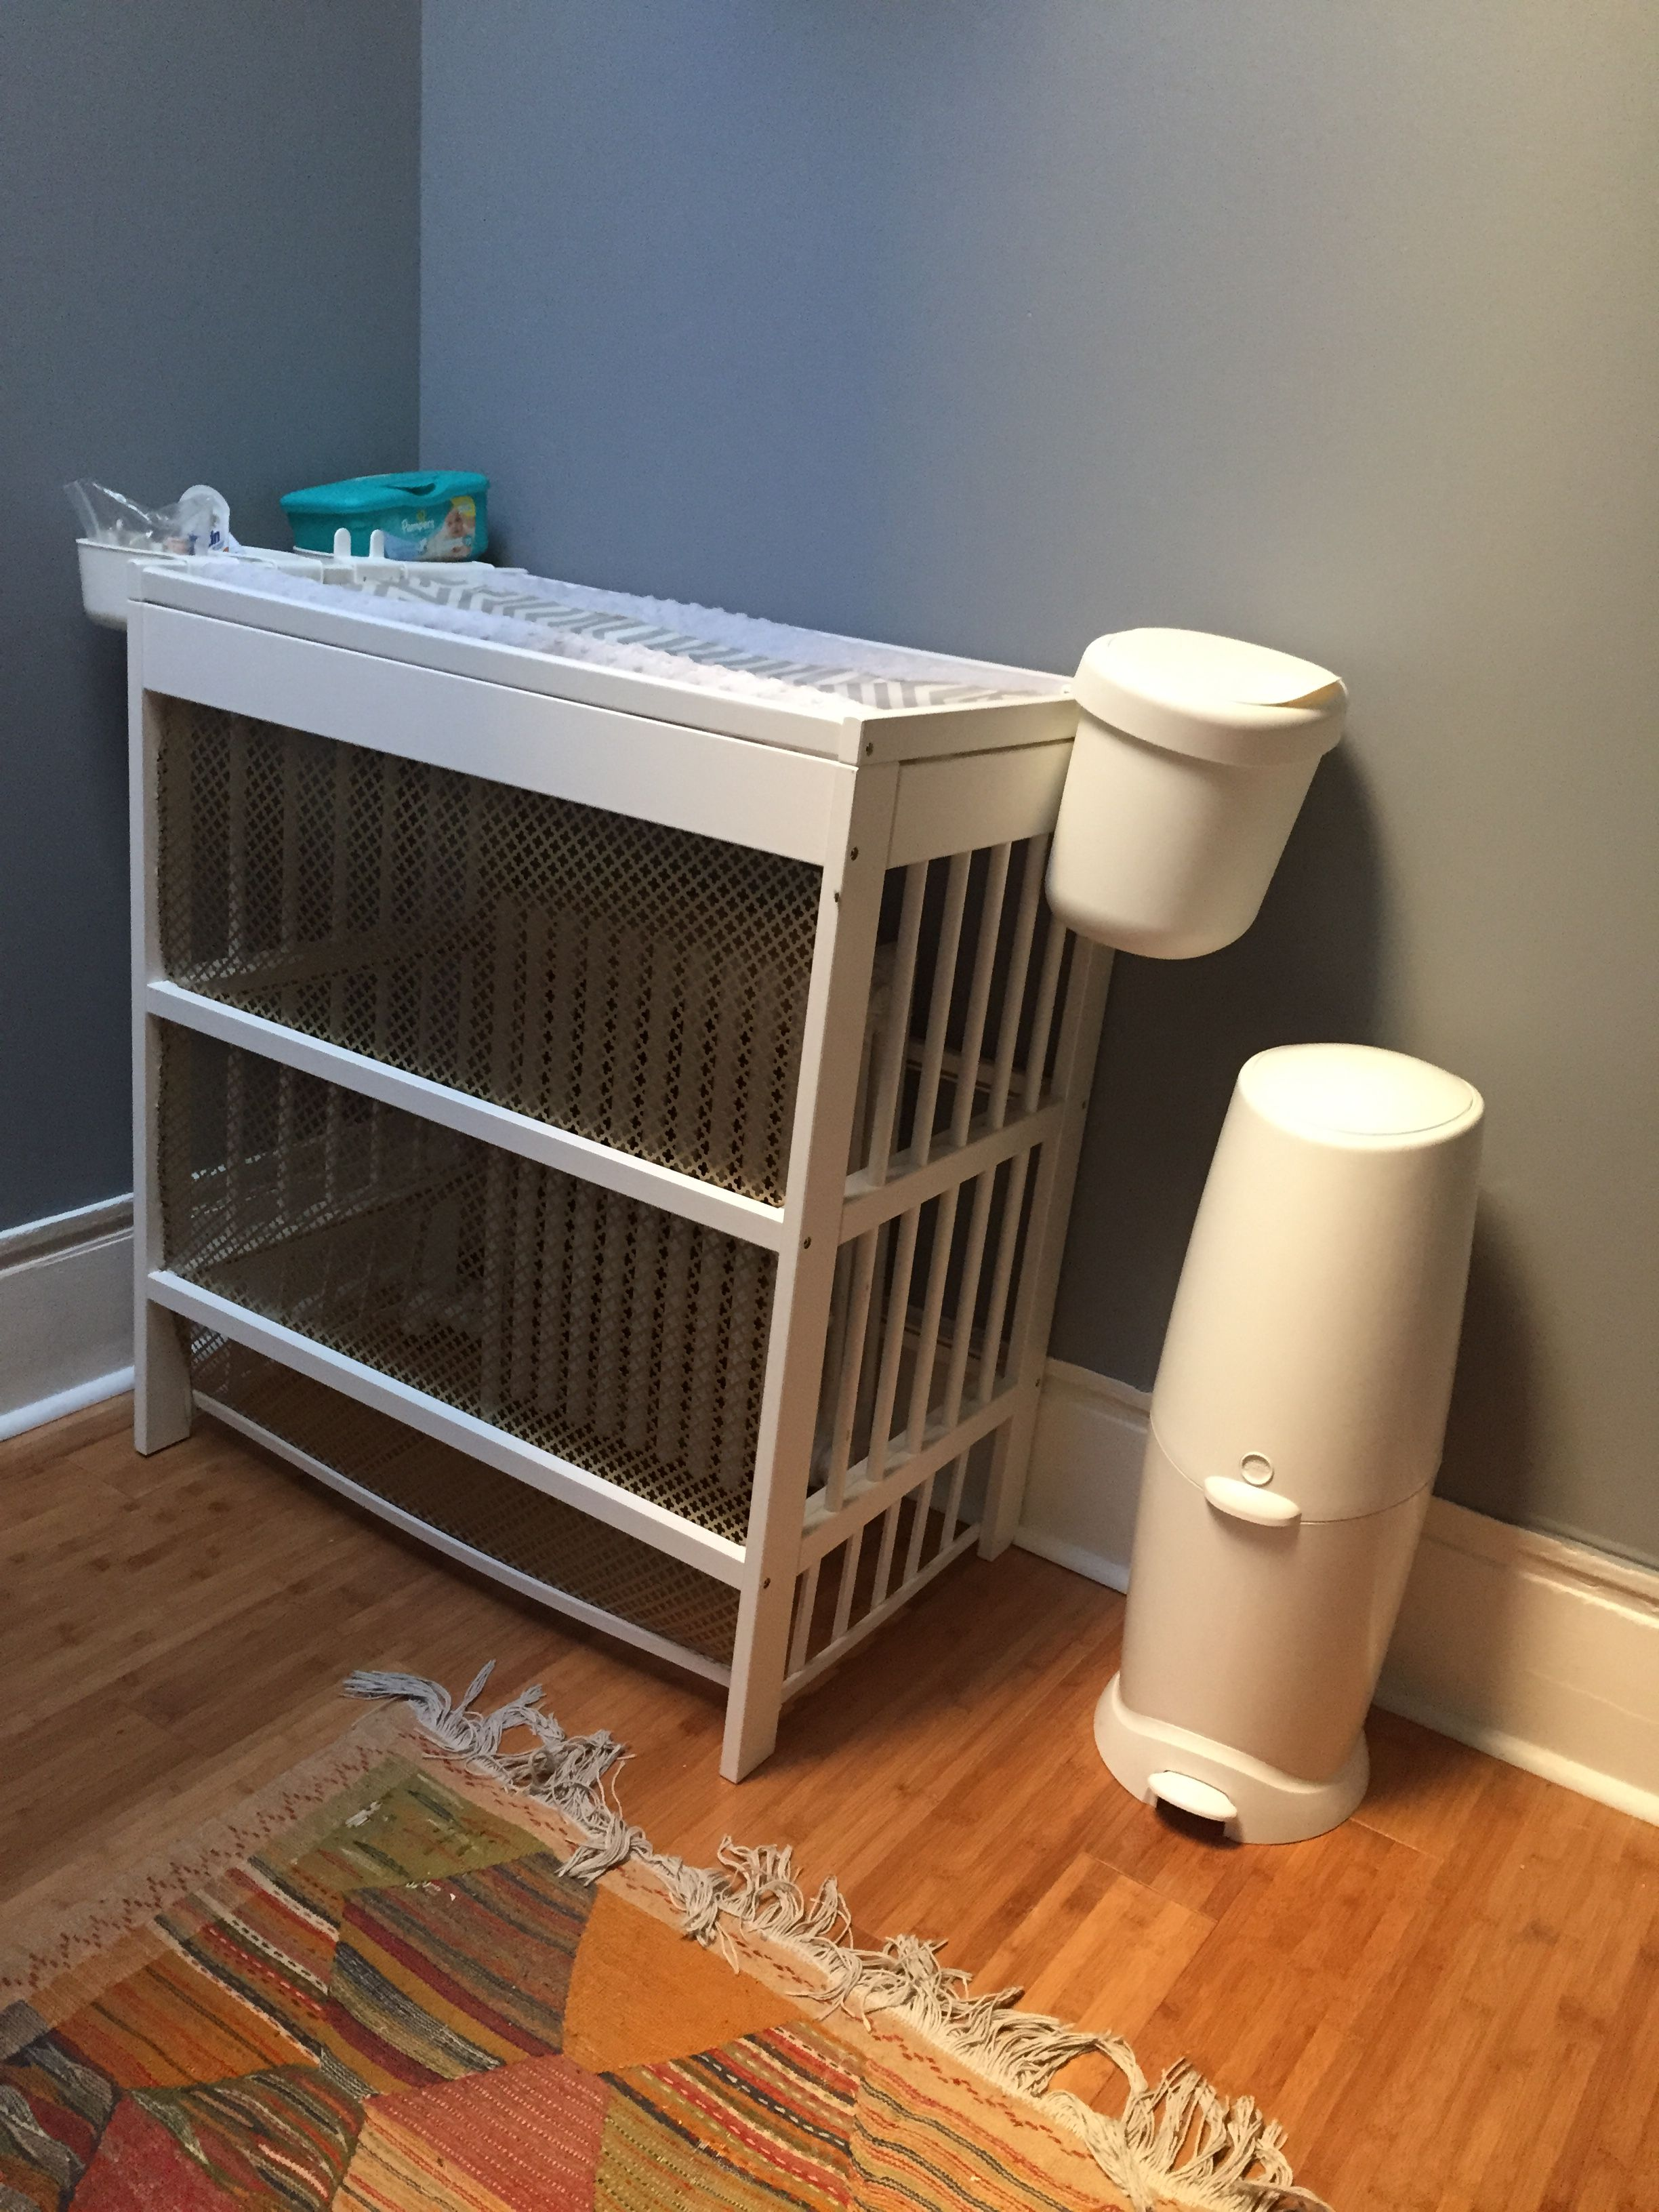 Just ikea hacked my way to a changing table and radiator